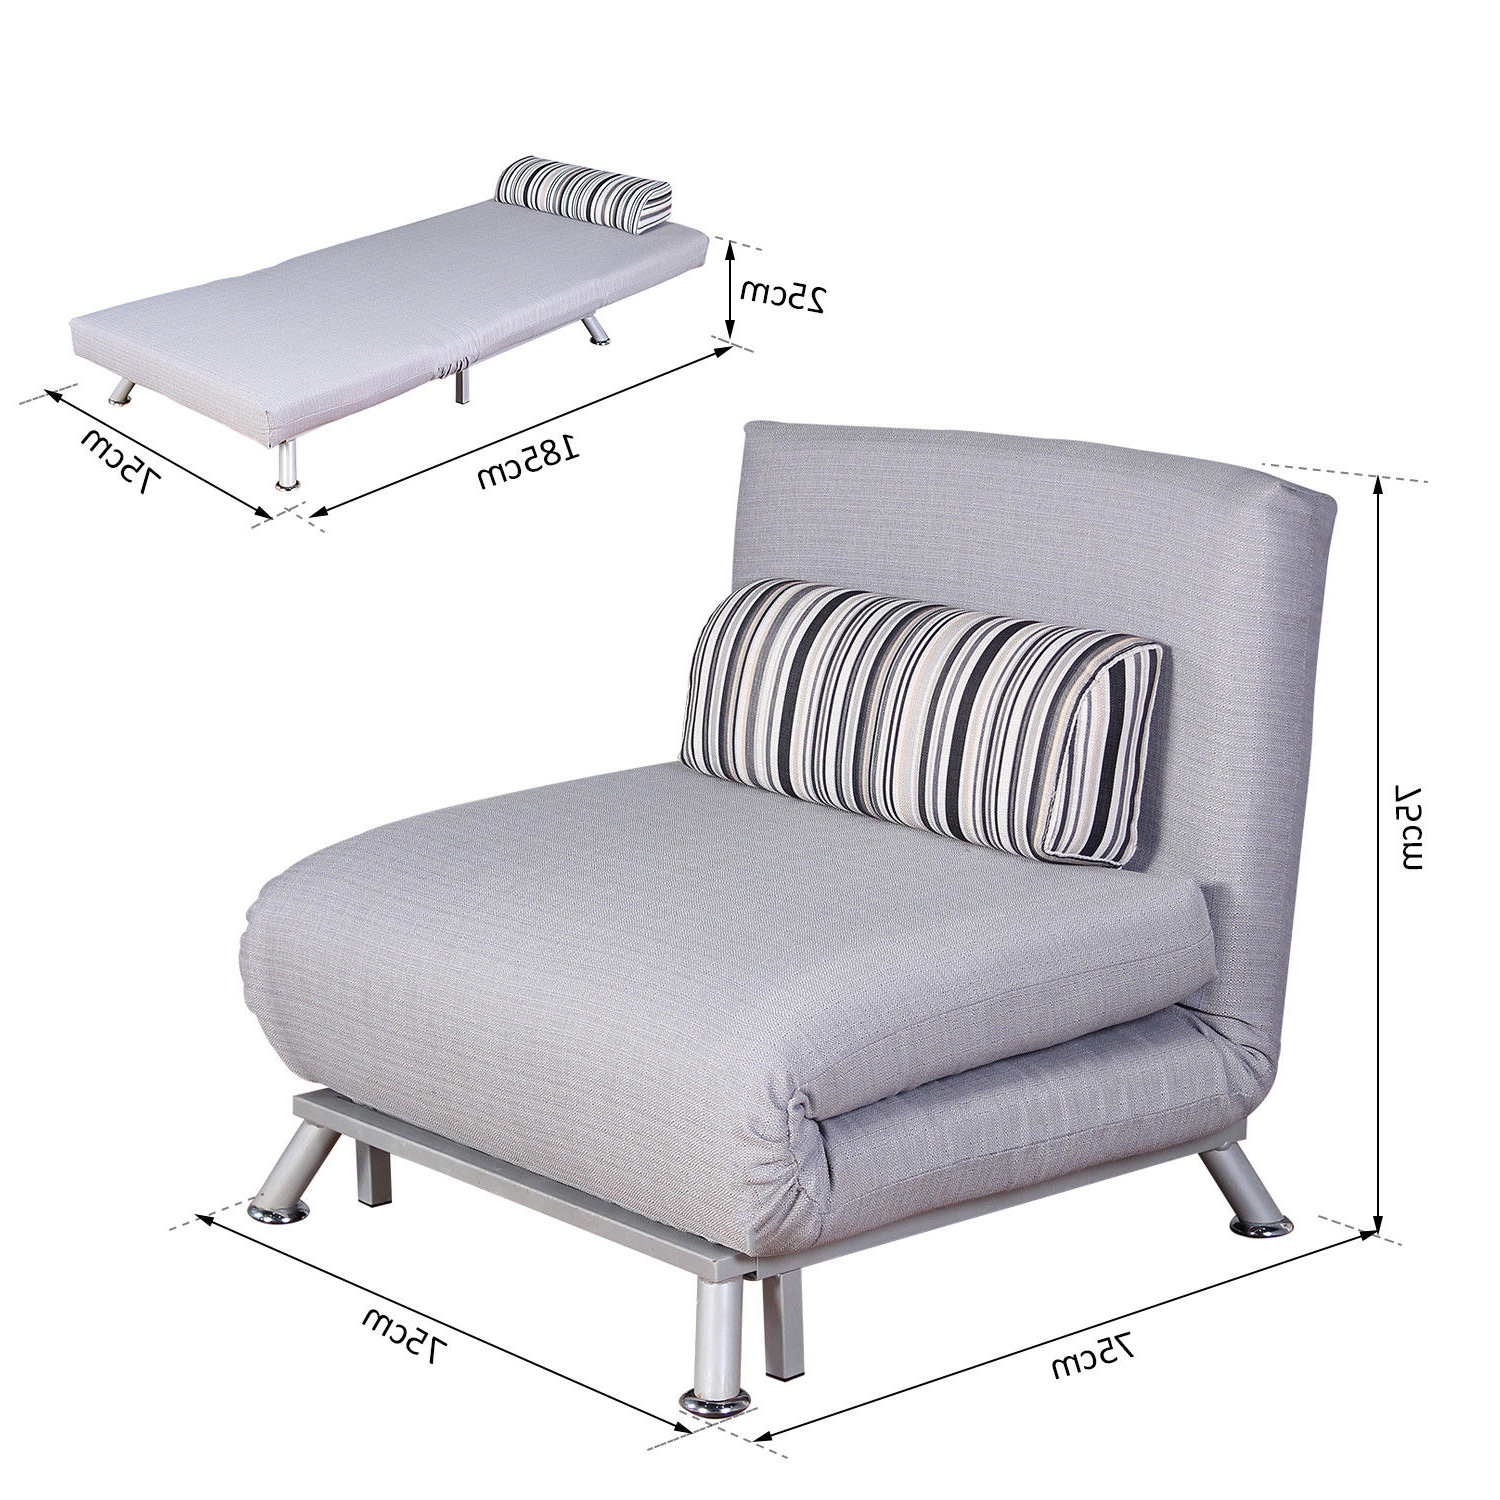 Folding Recliner Chair, Single Sofa Bed Lounger With Pillow (grey Regarding Most Current Cheap Single Sofa Bed Chairs (View 17 of 20)